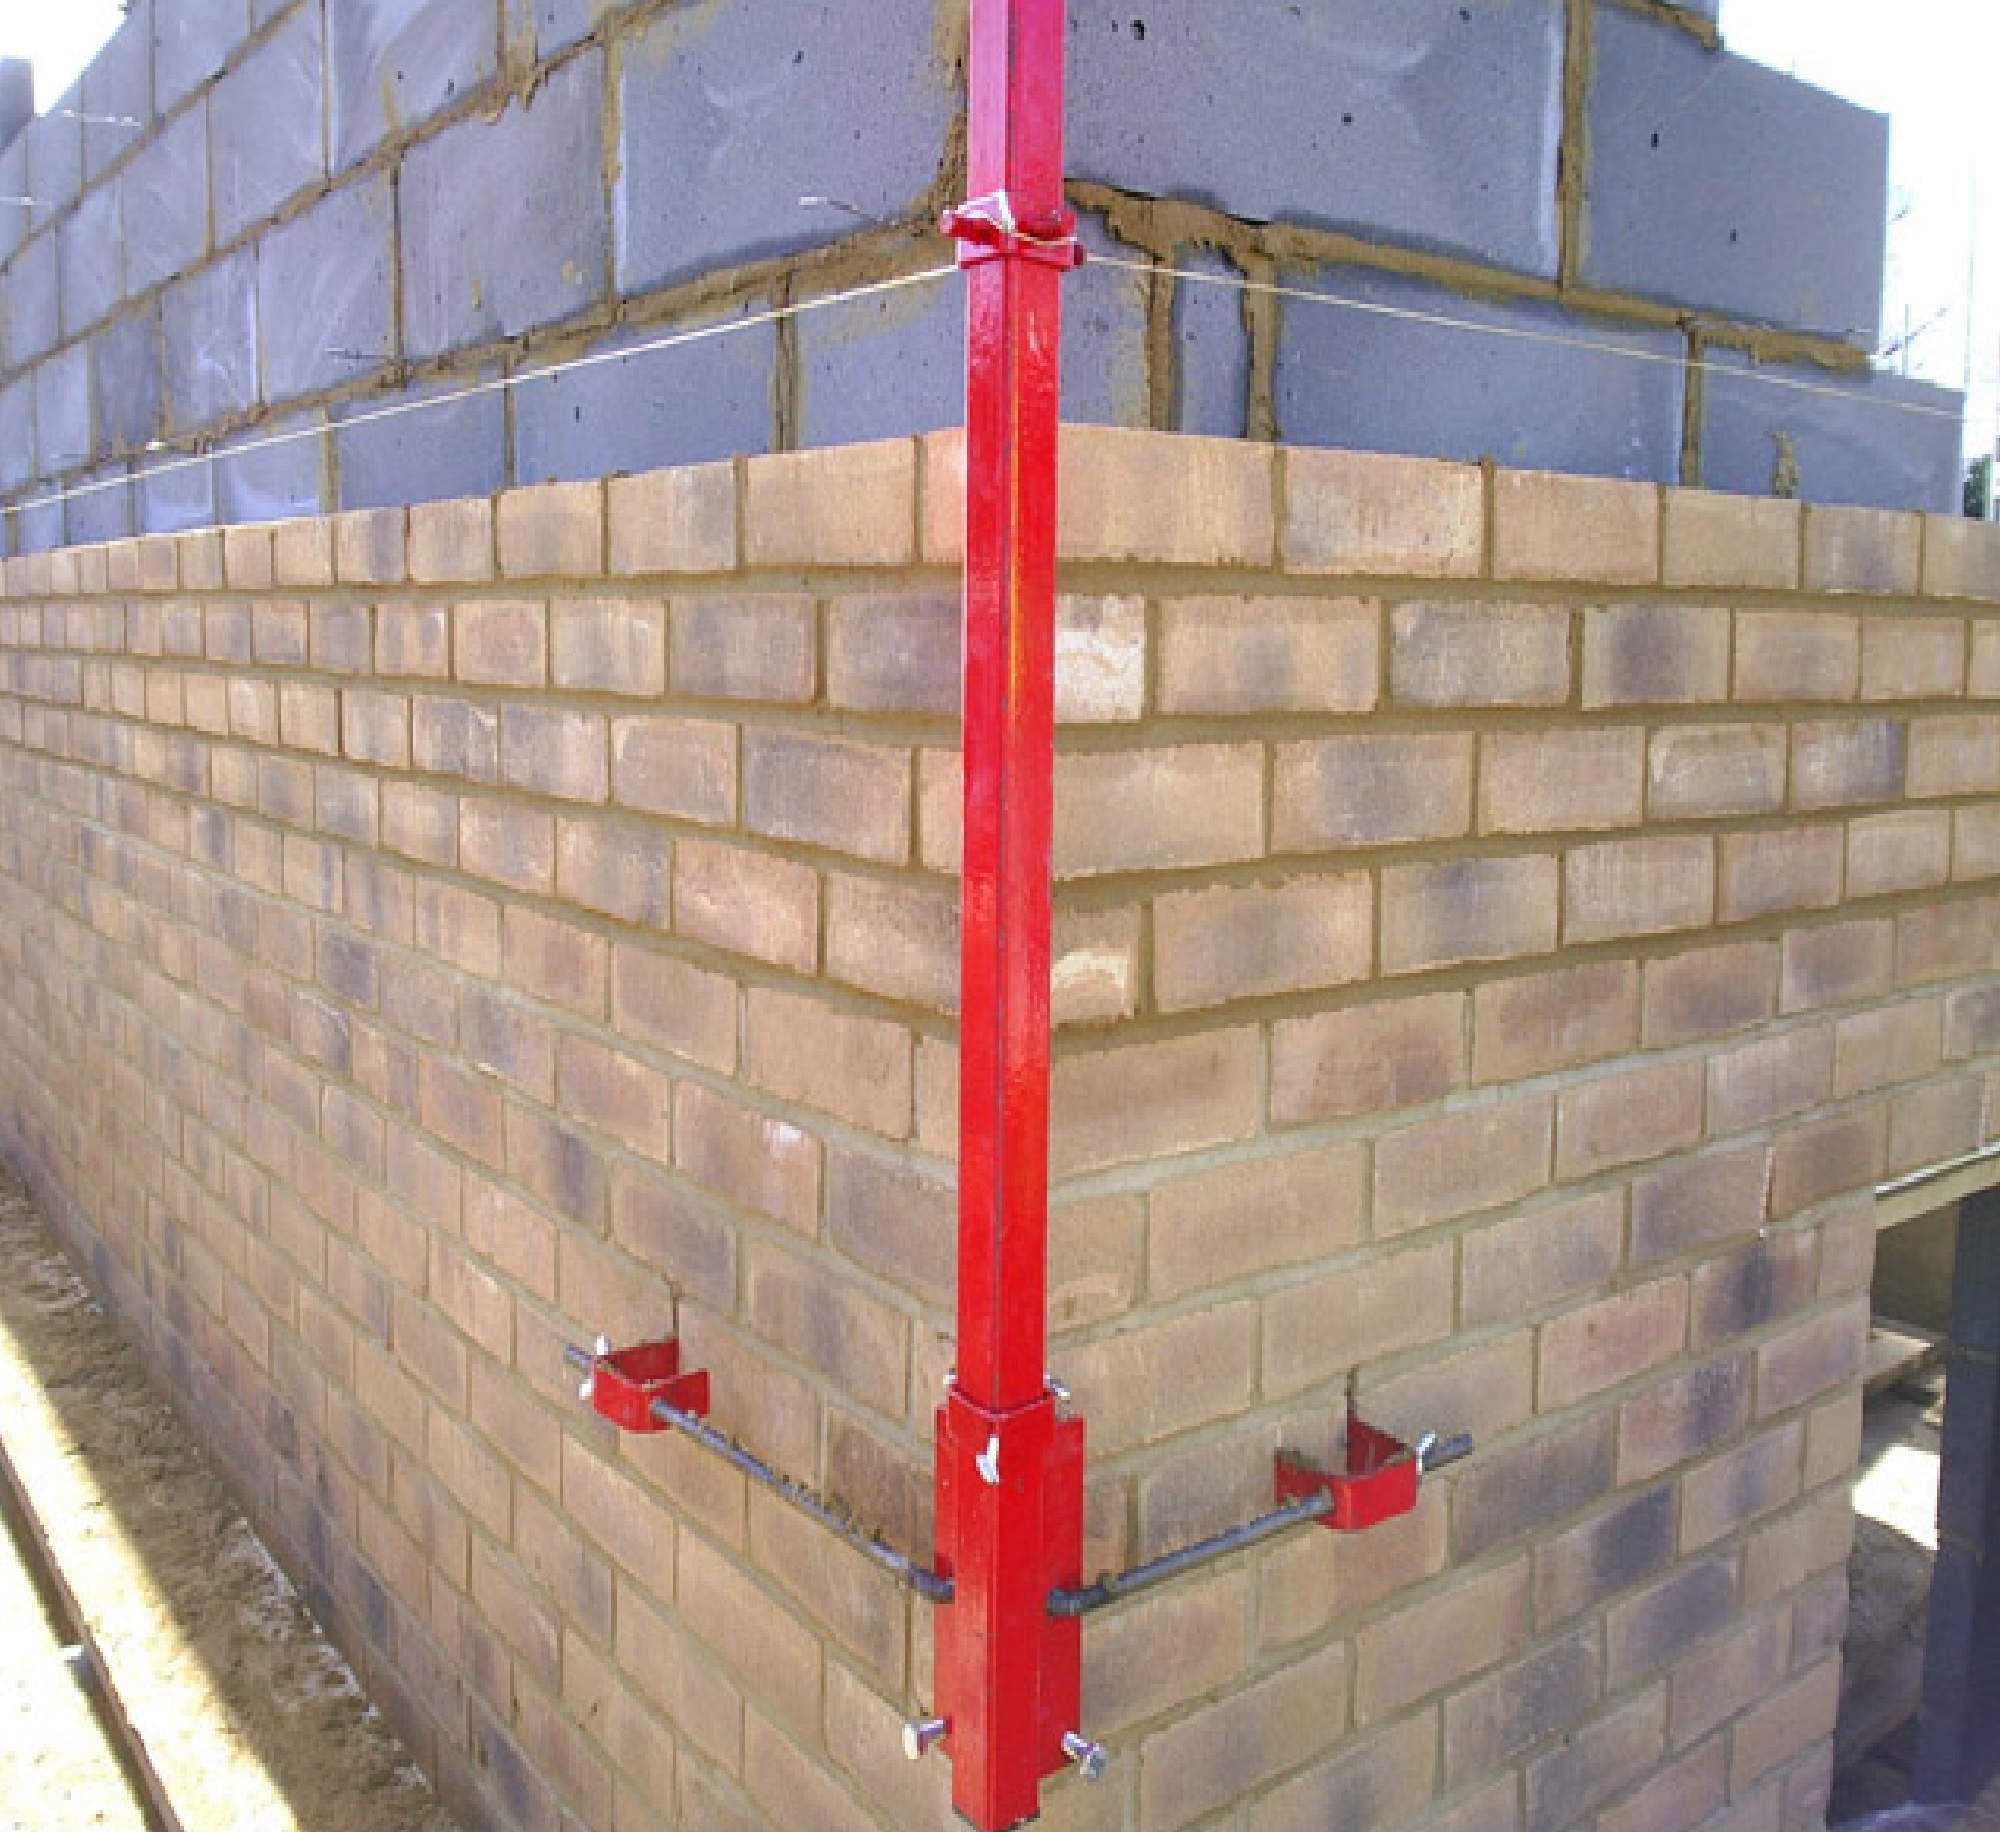 Red steel Mustang 6' External Profile fixed onto the outside corner of a wall in the process of being built